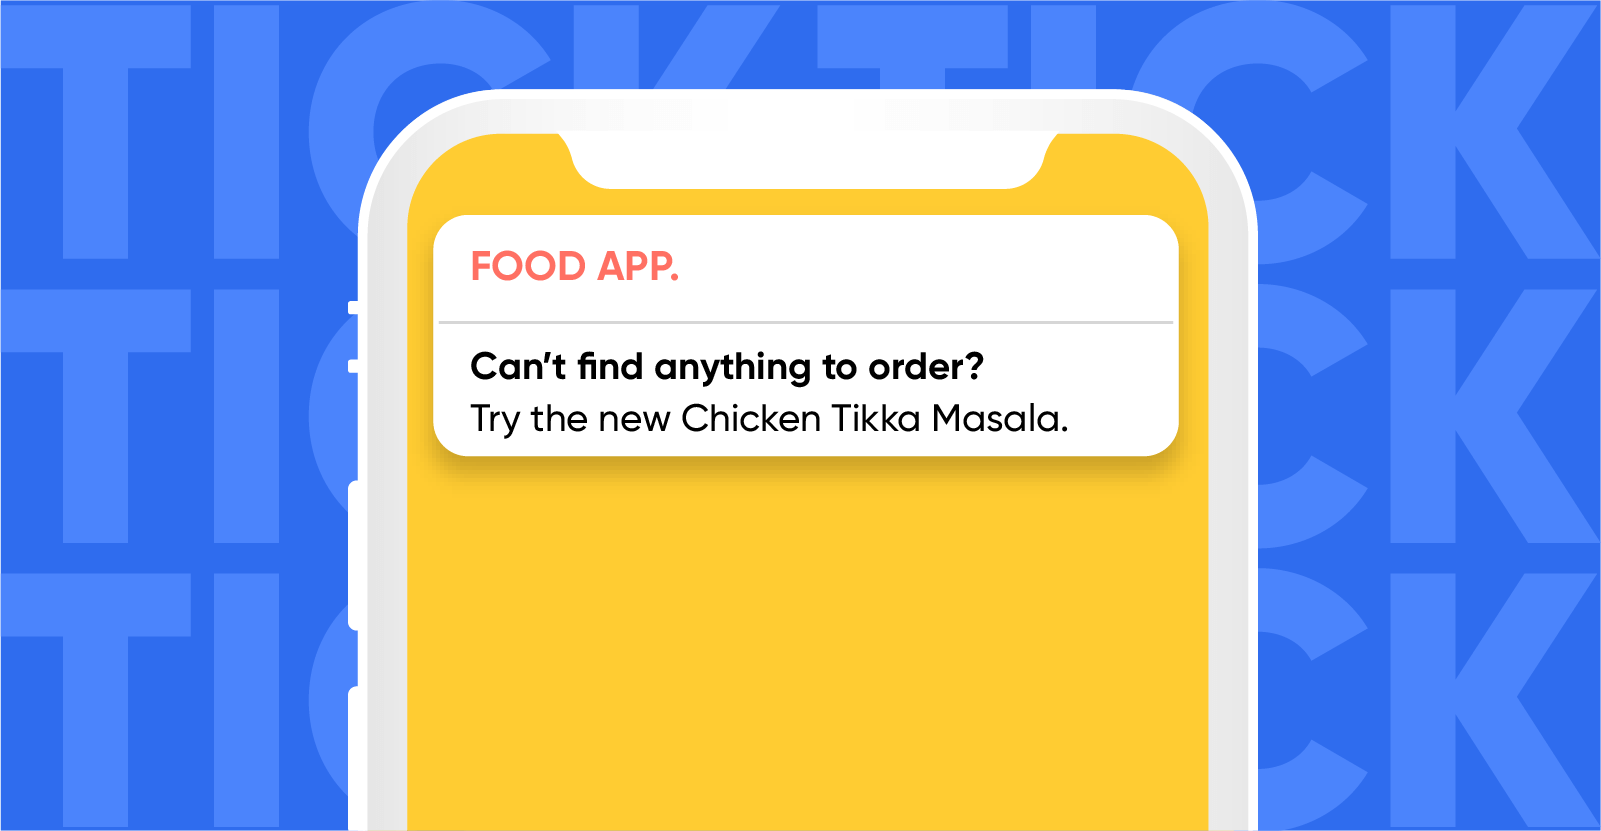 Push notification sent to an undecided food app user